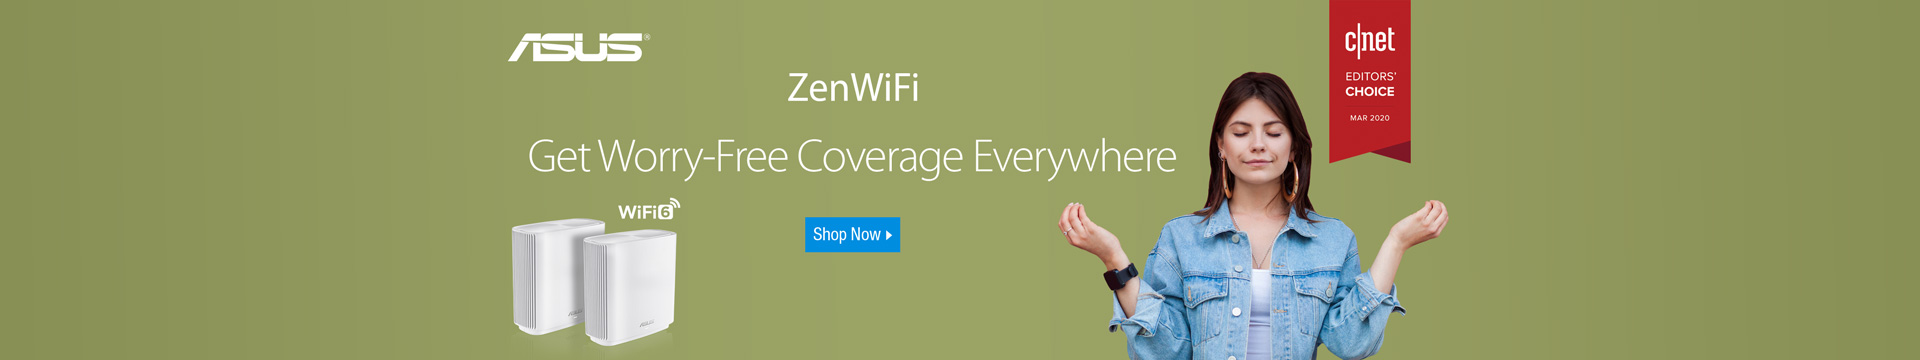 ZenWiFi Get Worry-Free Coverage Everywhere